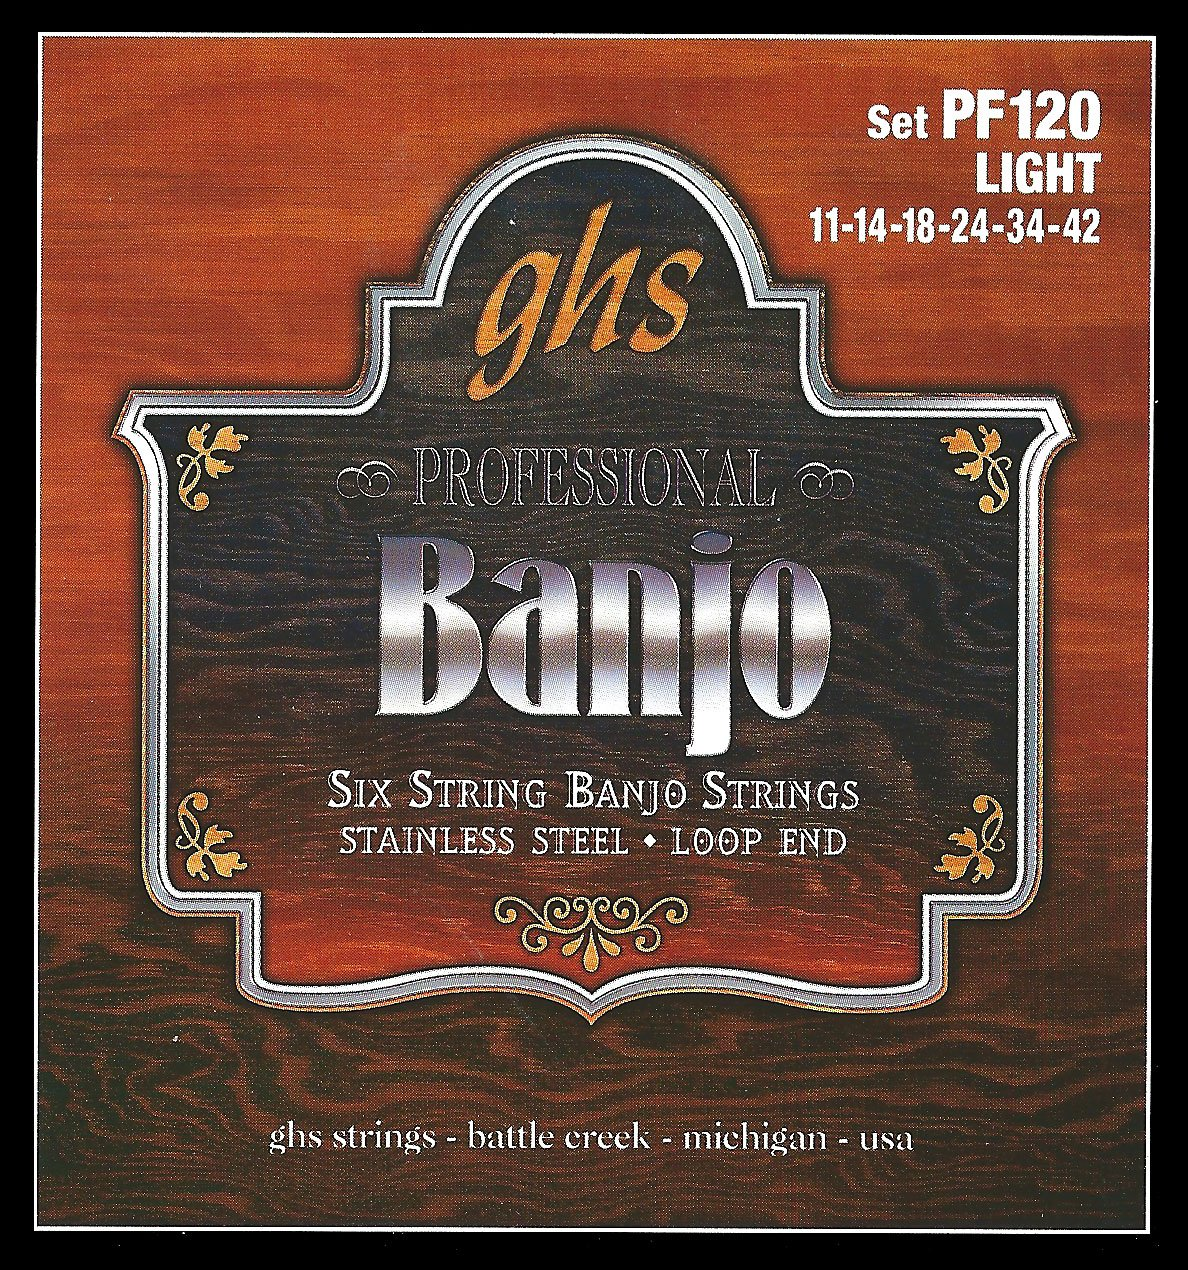 Strings Banjo GHS PF120 Banjo 6-string set. Stainless steel.